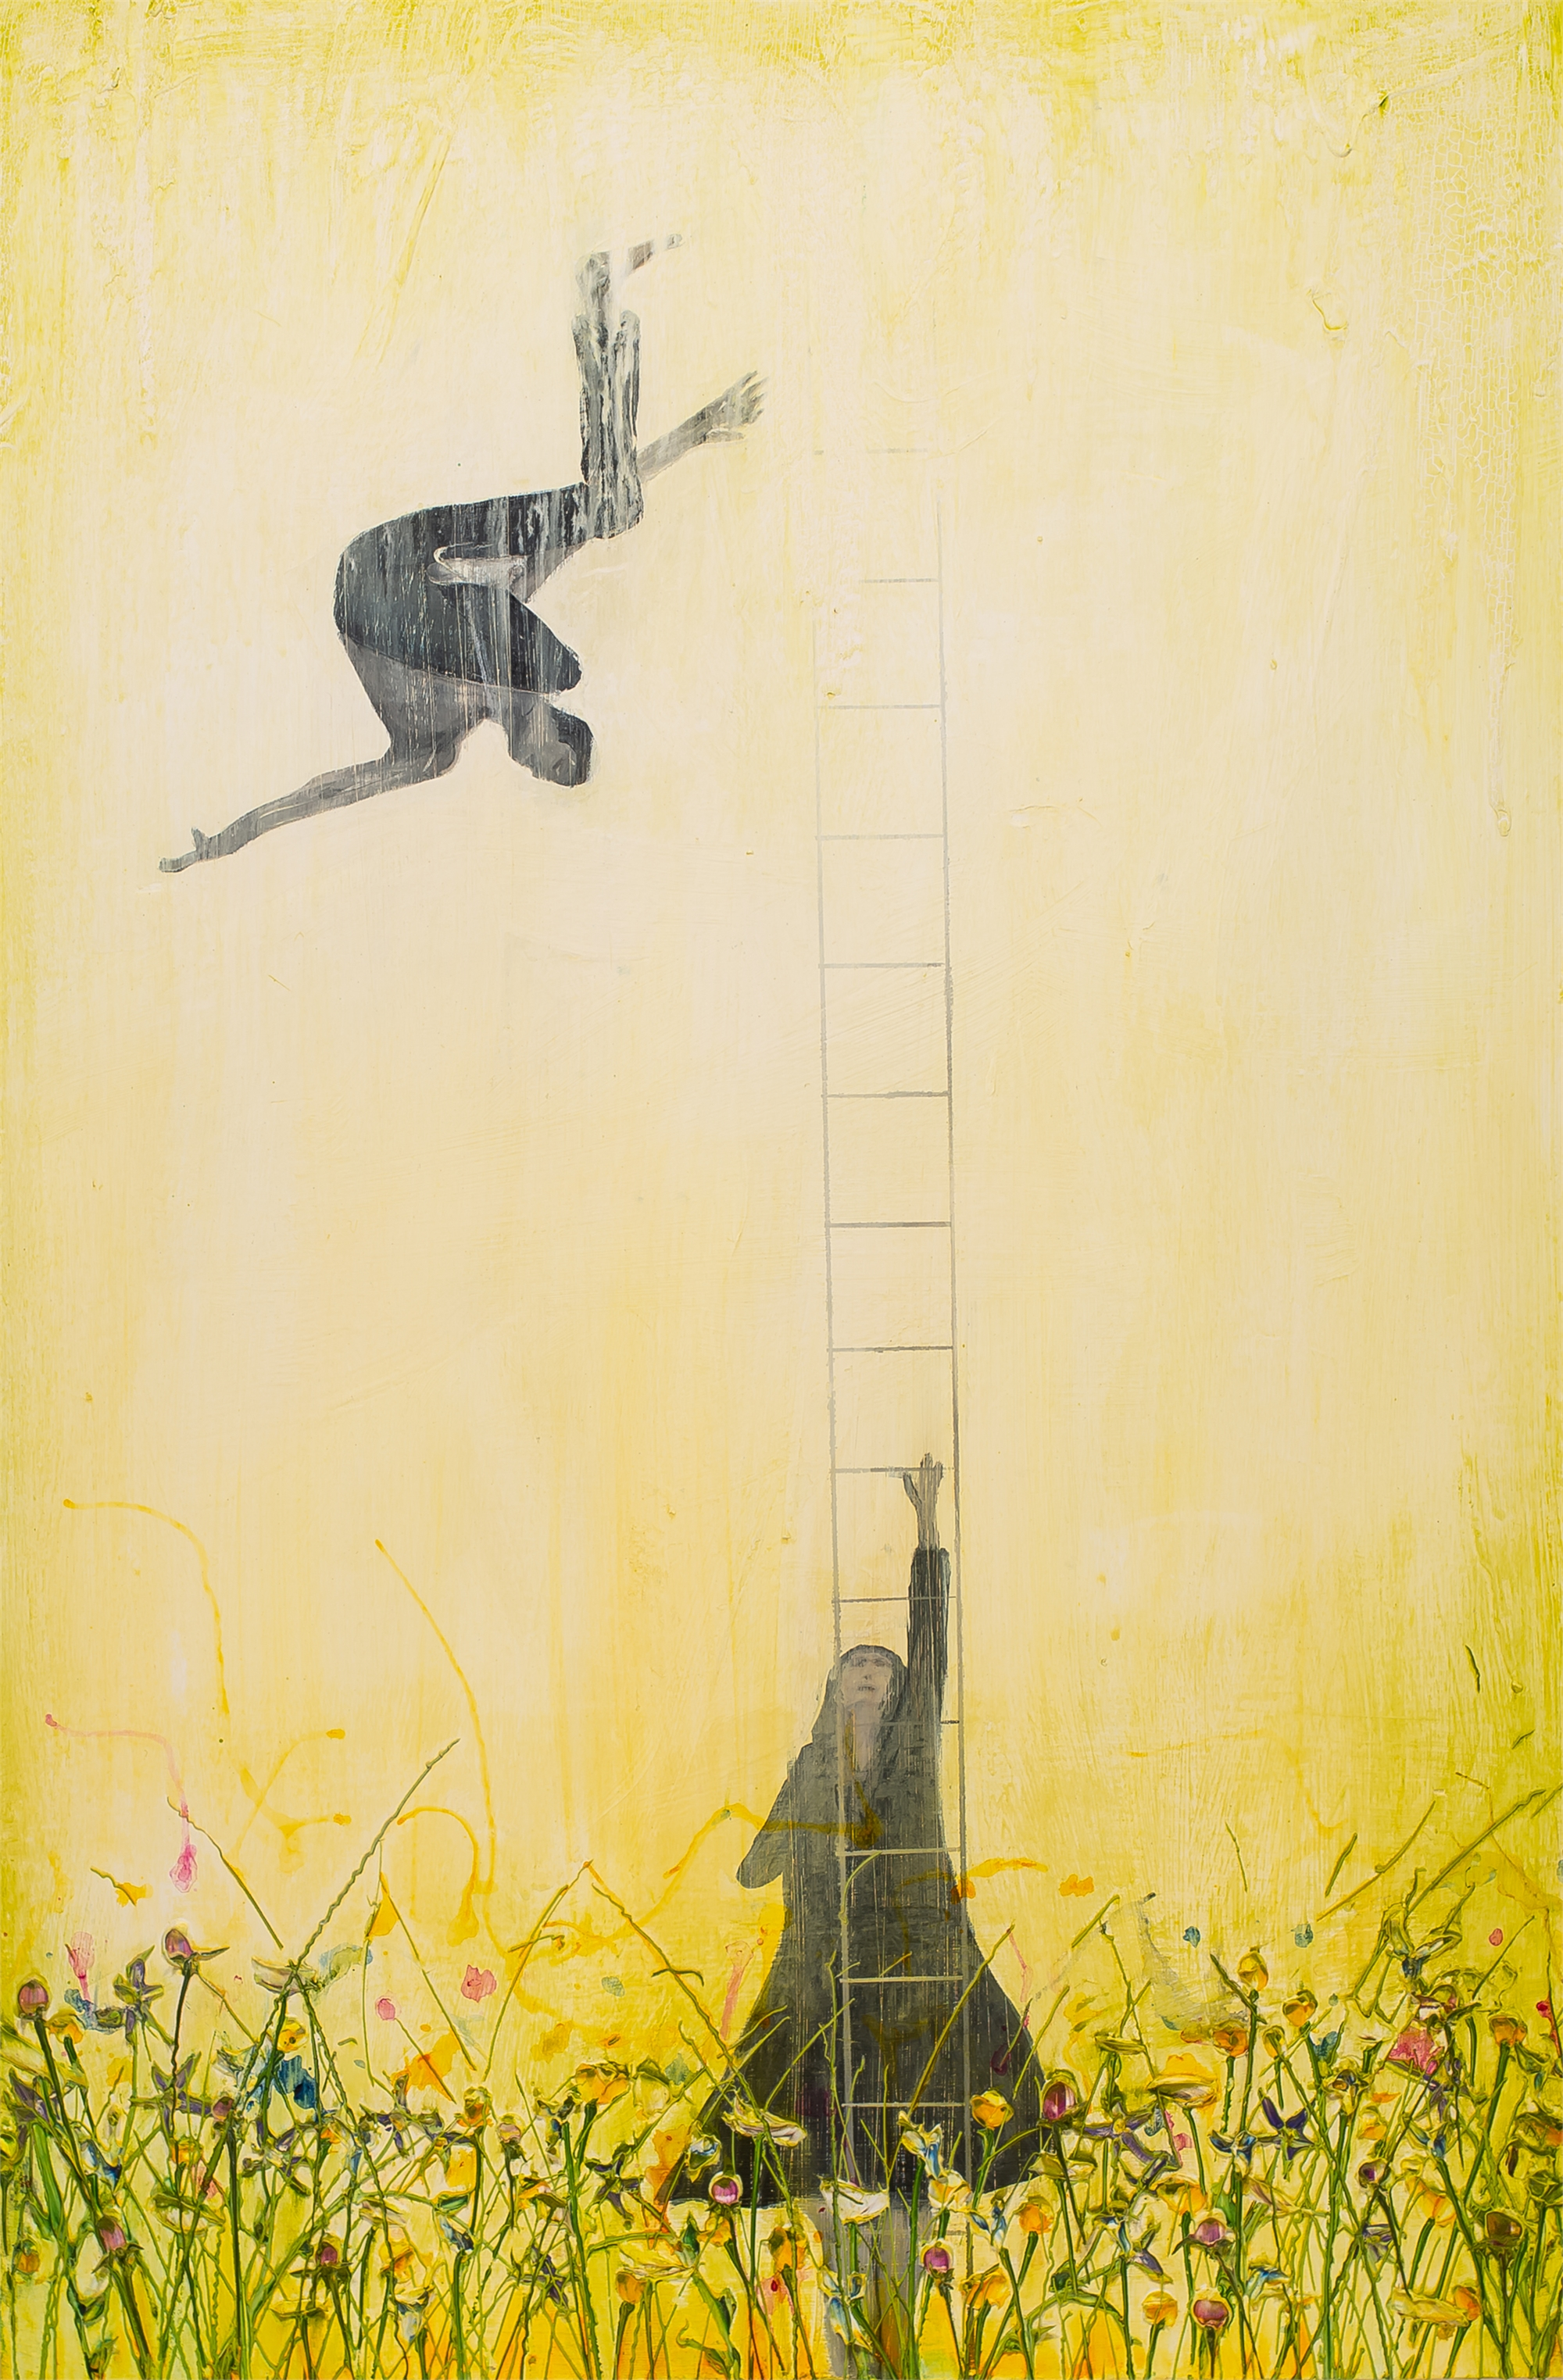 SUSPENSION OF DISBELIEF LADDER by Justin Gaffrey